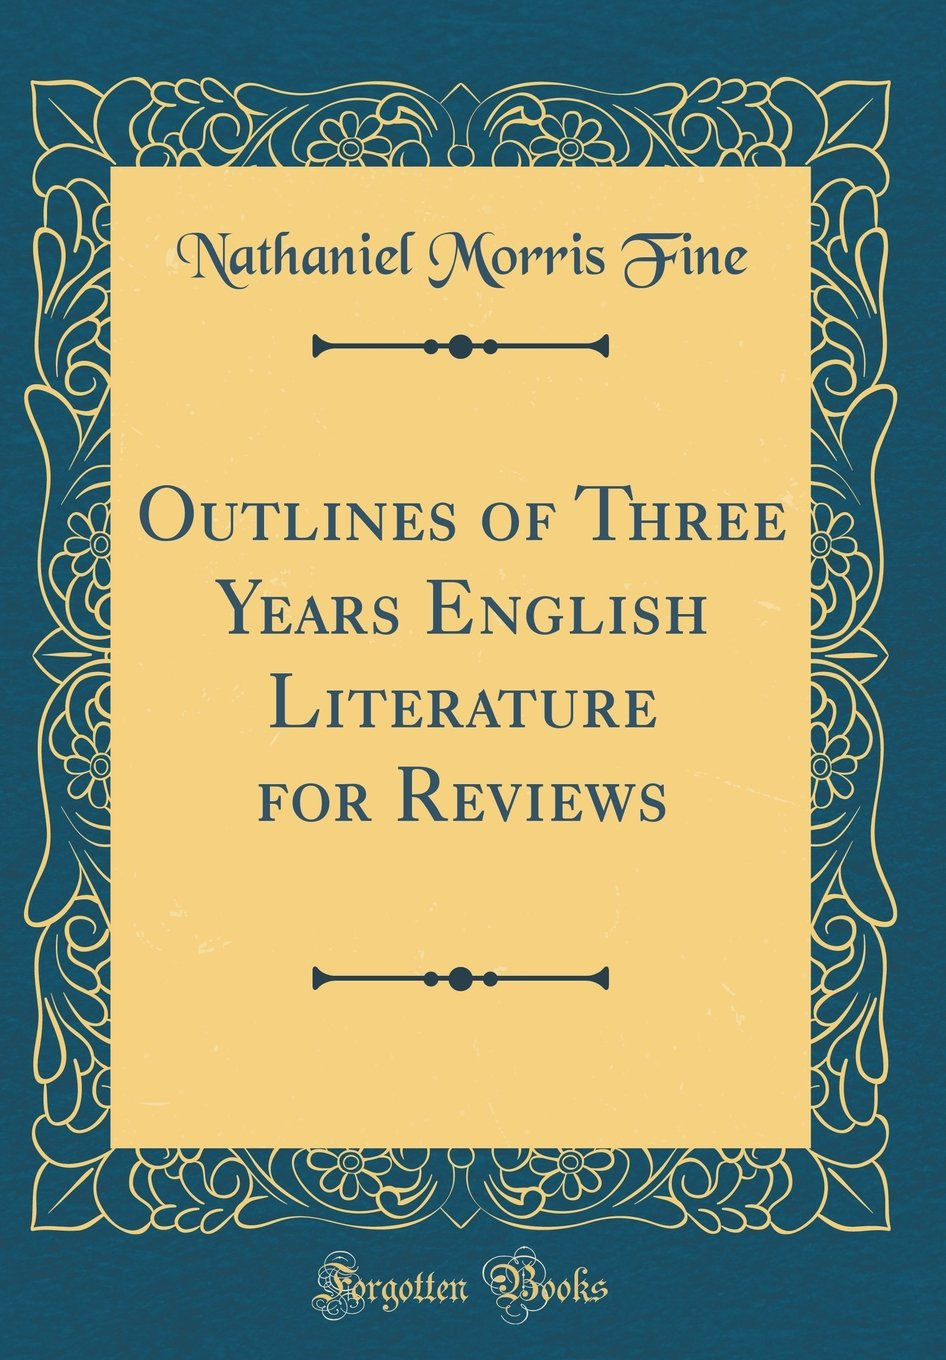 Outlines of Three Years English Literature for Reviews (Classic Reprint) ebook